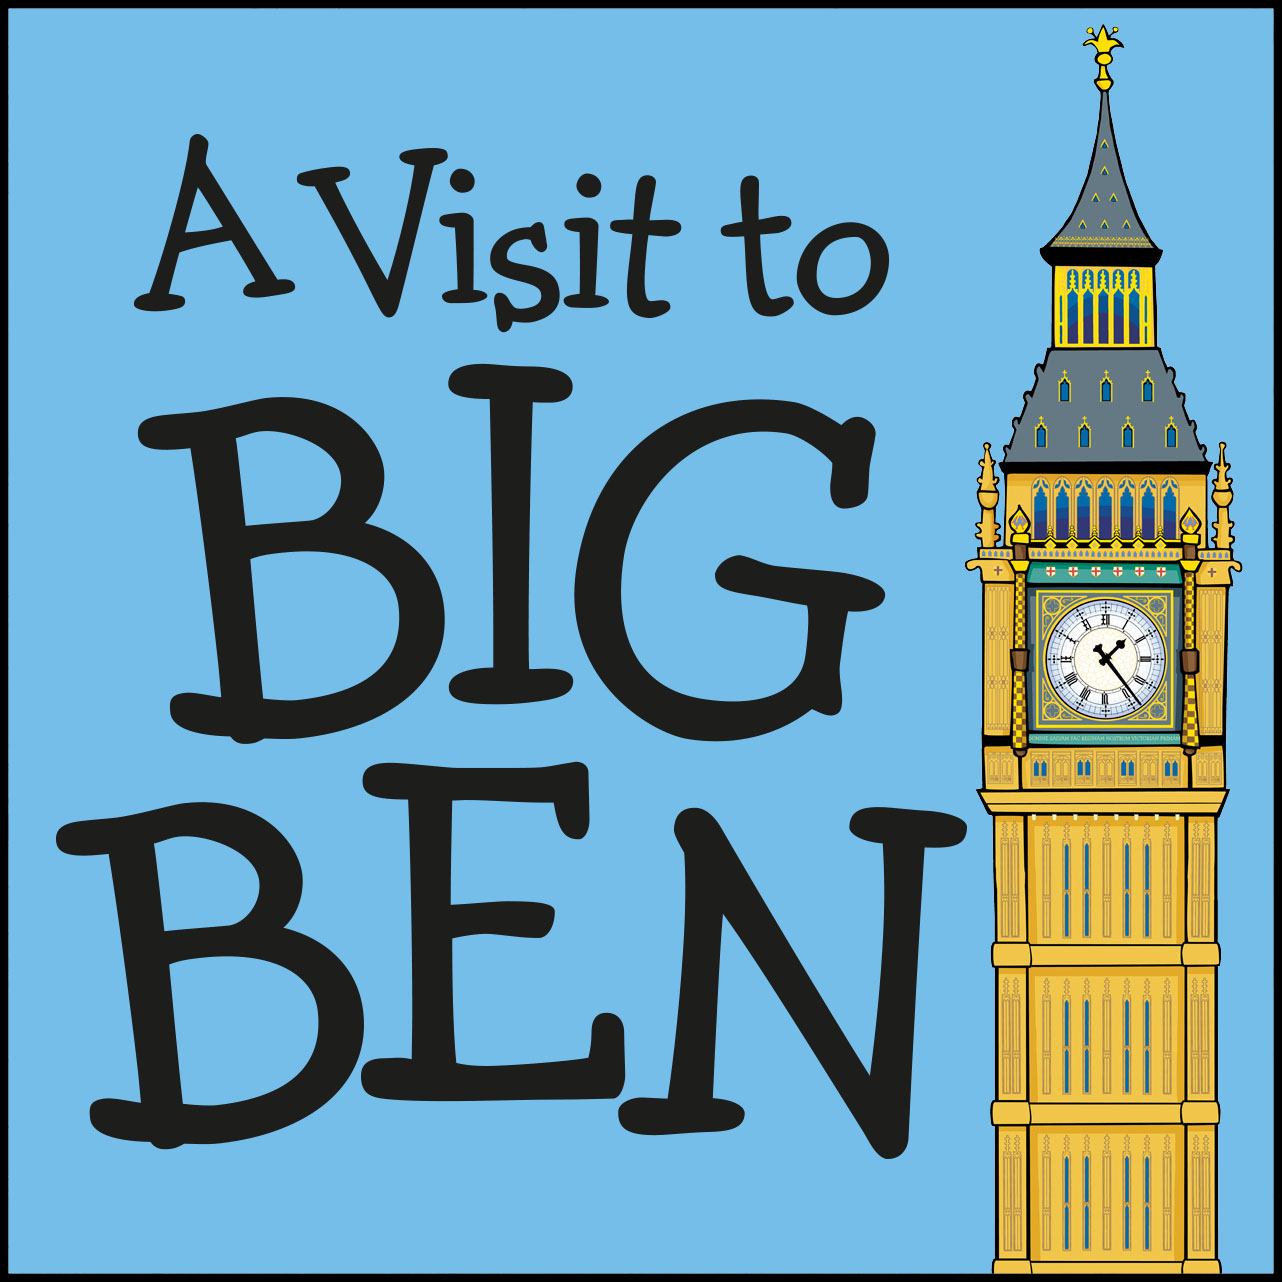 Link to 'A Visit to Big Ben' Video